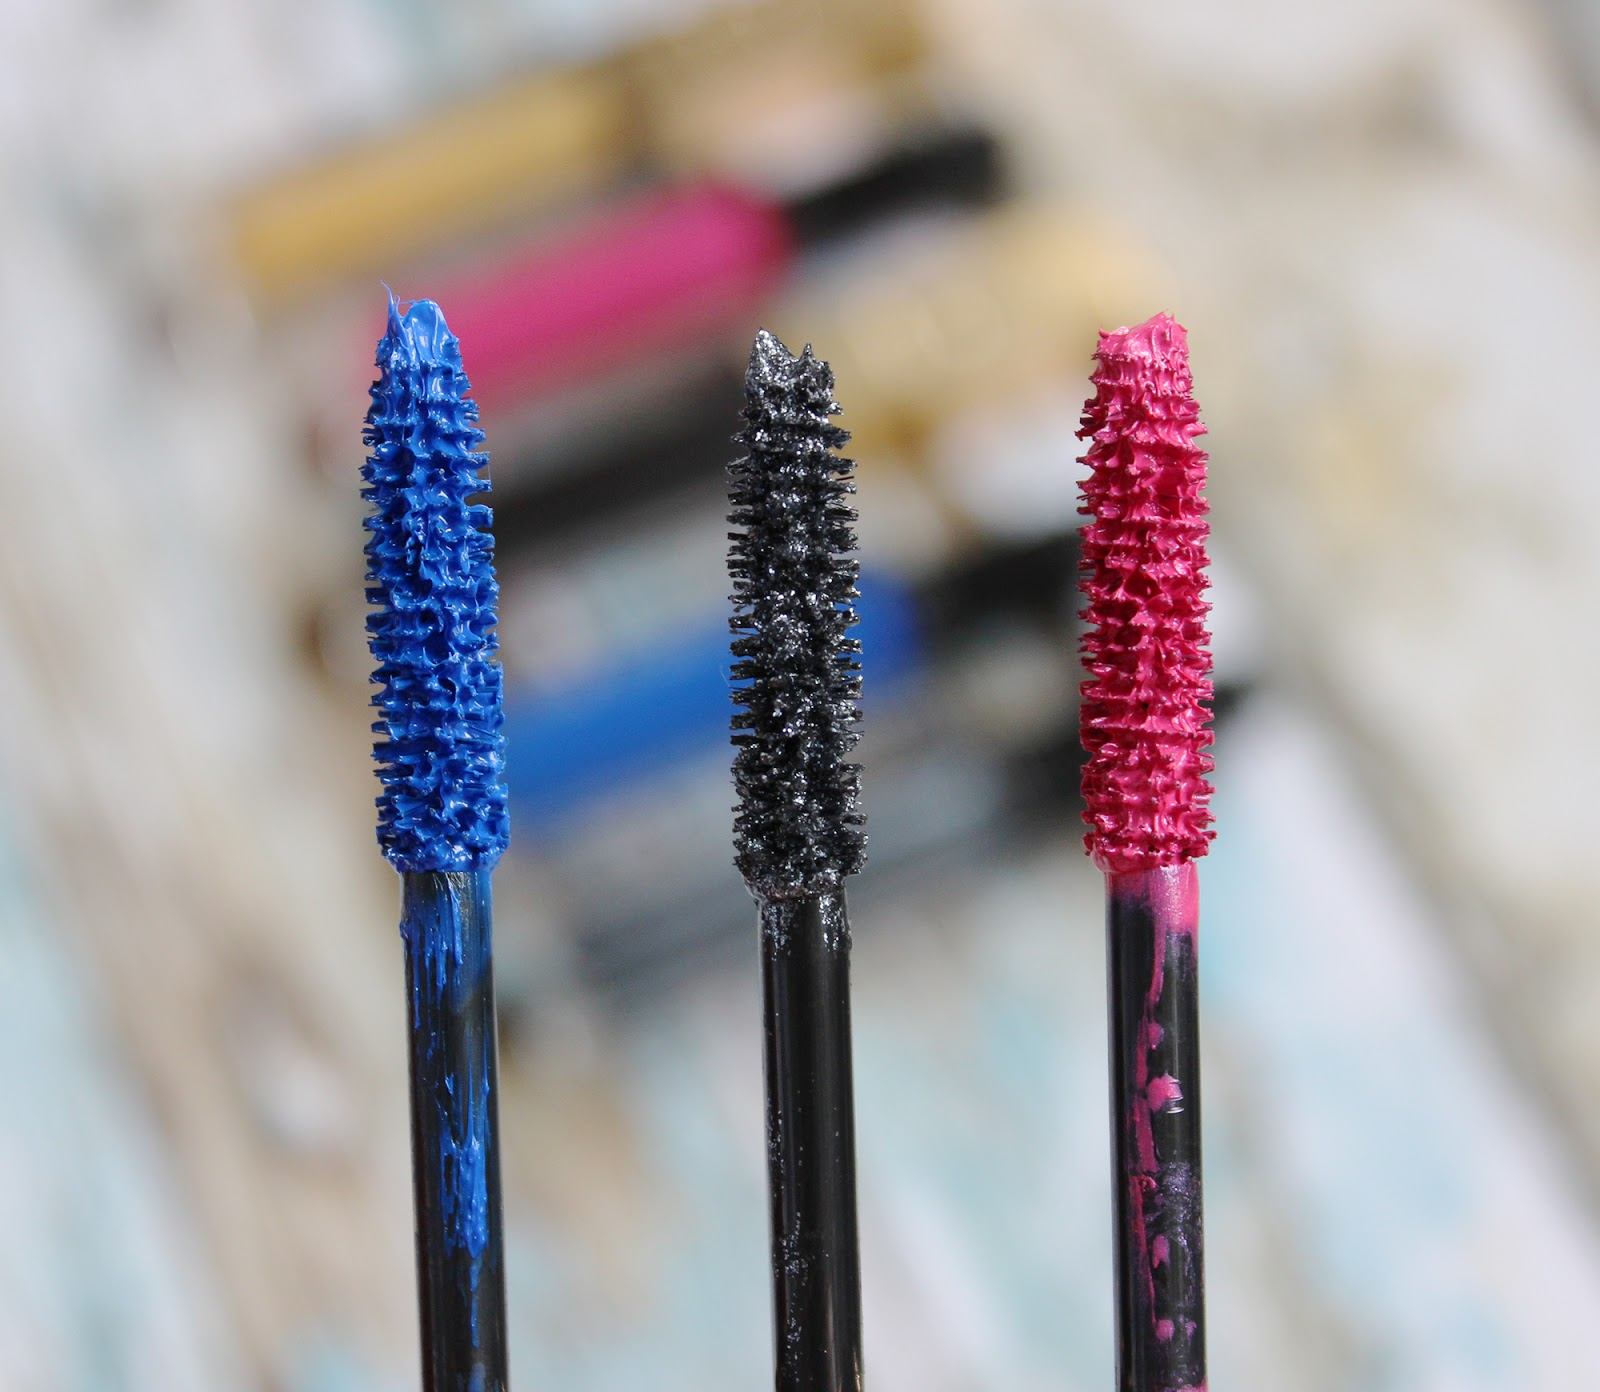 YSL Vinyl Couture mascaras review